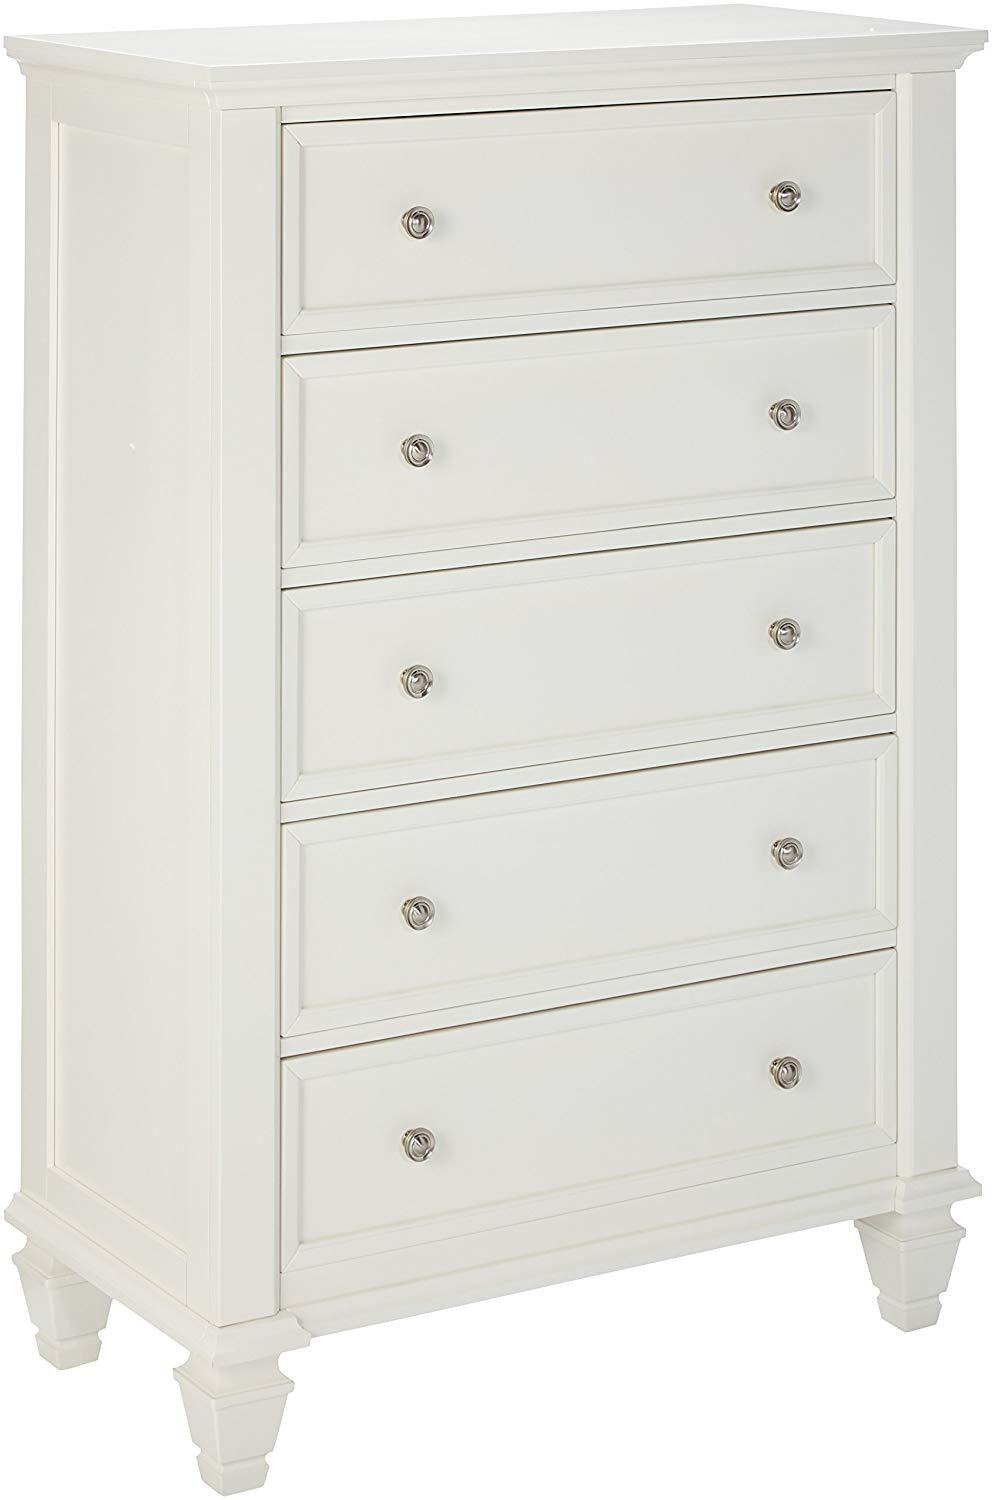 Sandy Beach White Drawers Chest